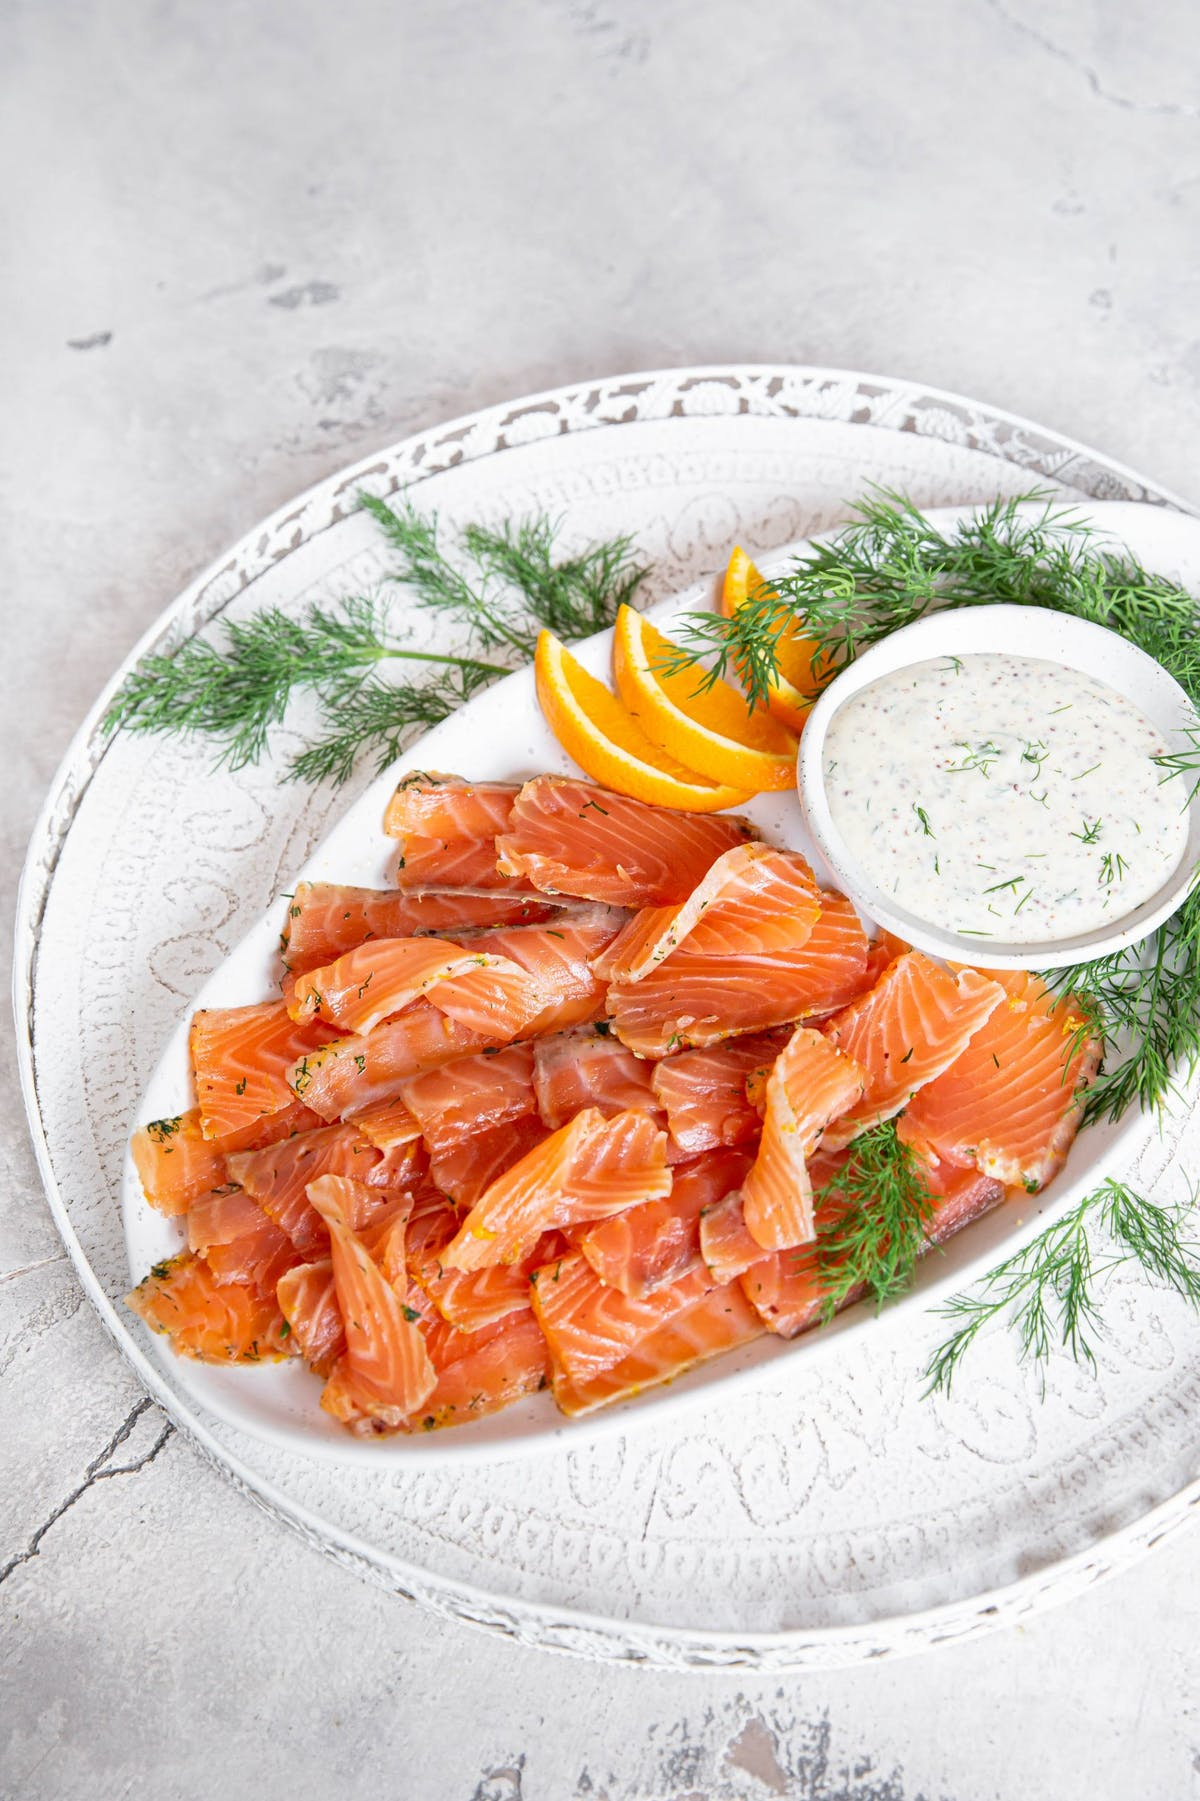 Keto orange-cured salmon with dill and mustard mayo